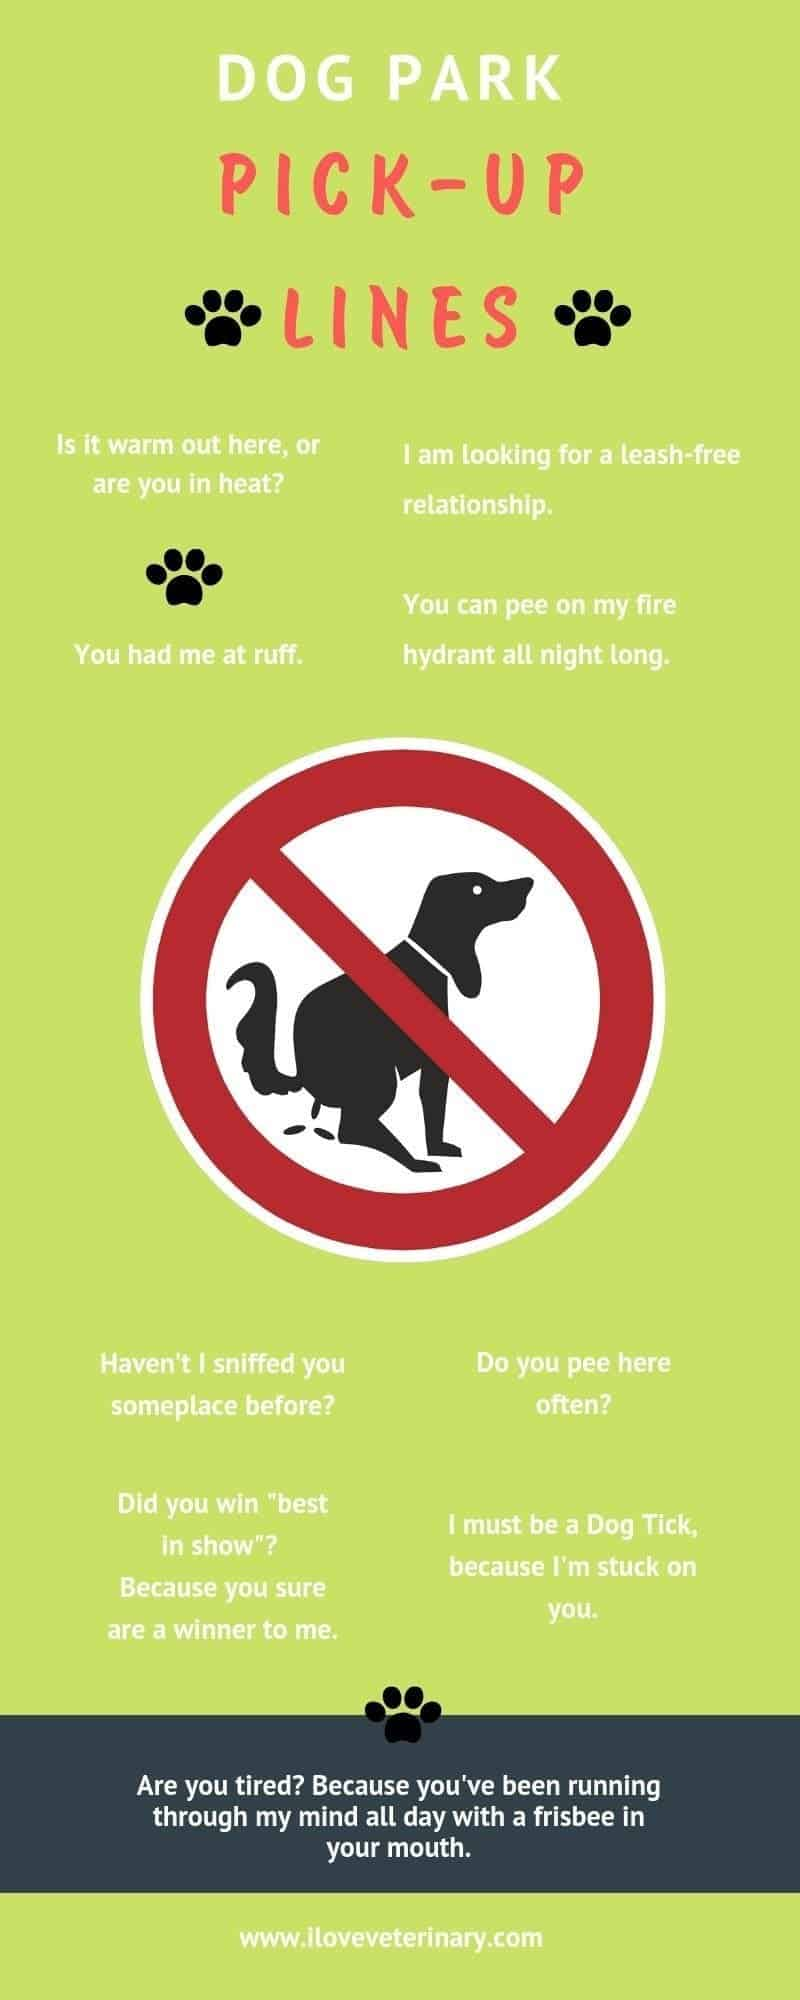 dog park pick up lines infographic I Love Veterinary